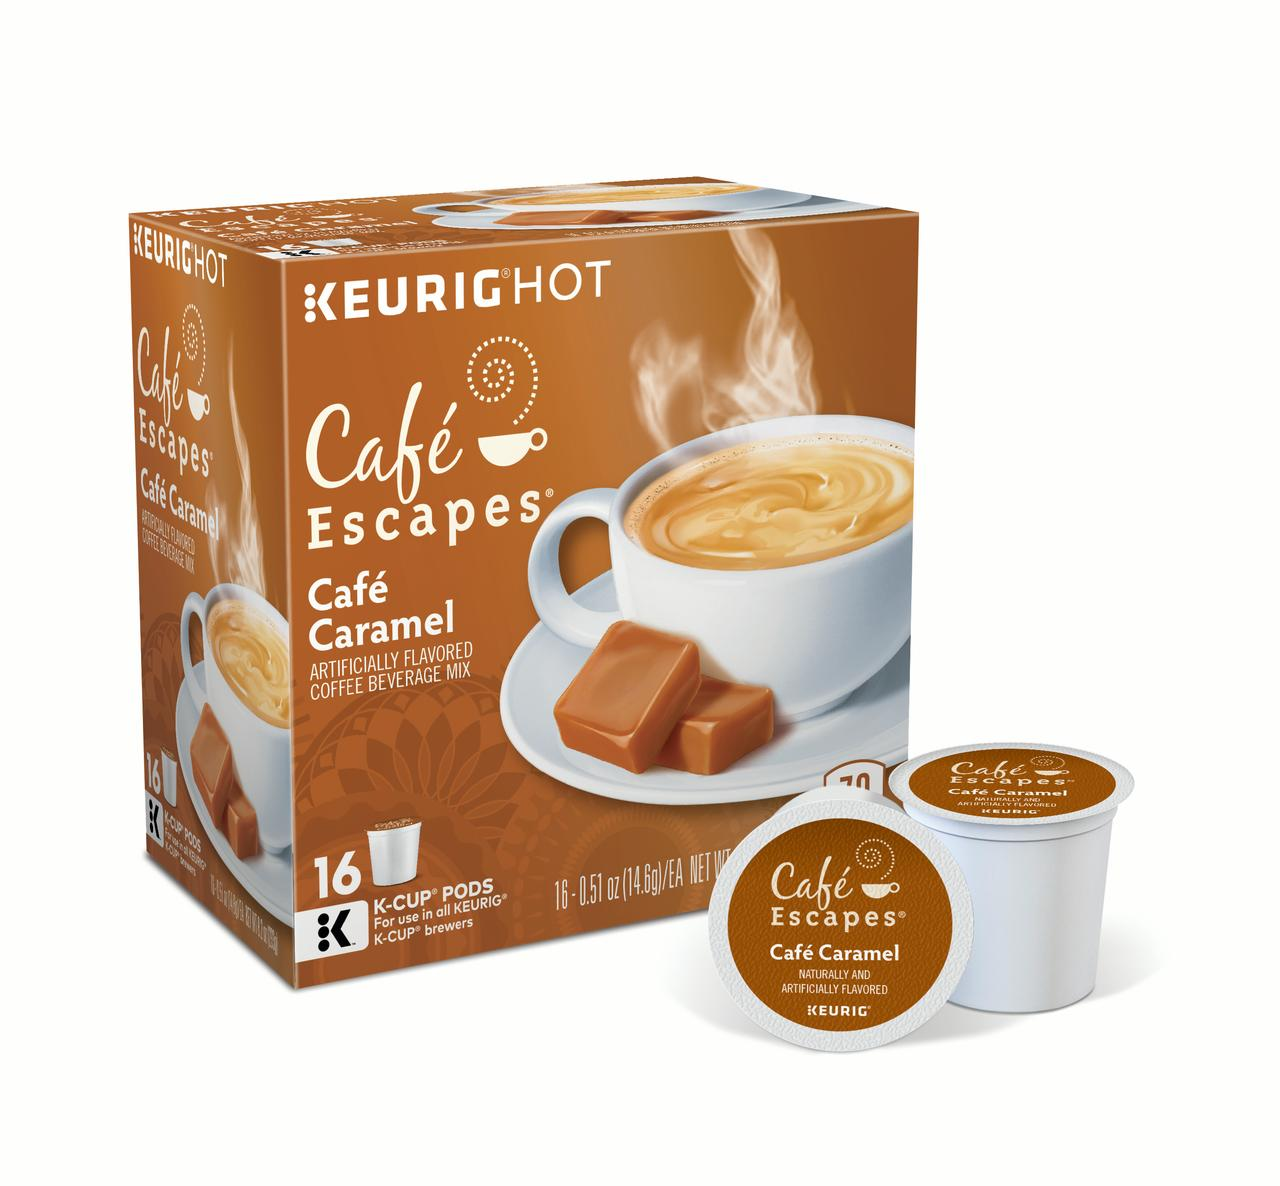 Café Escapes Café Caramel Keurig Single-Serve K-Cup Pods, 16 Count